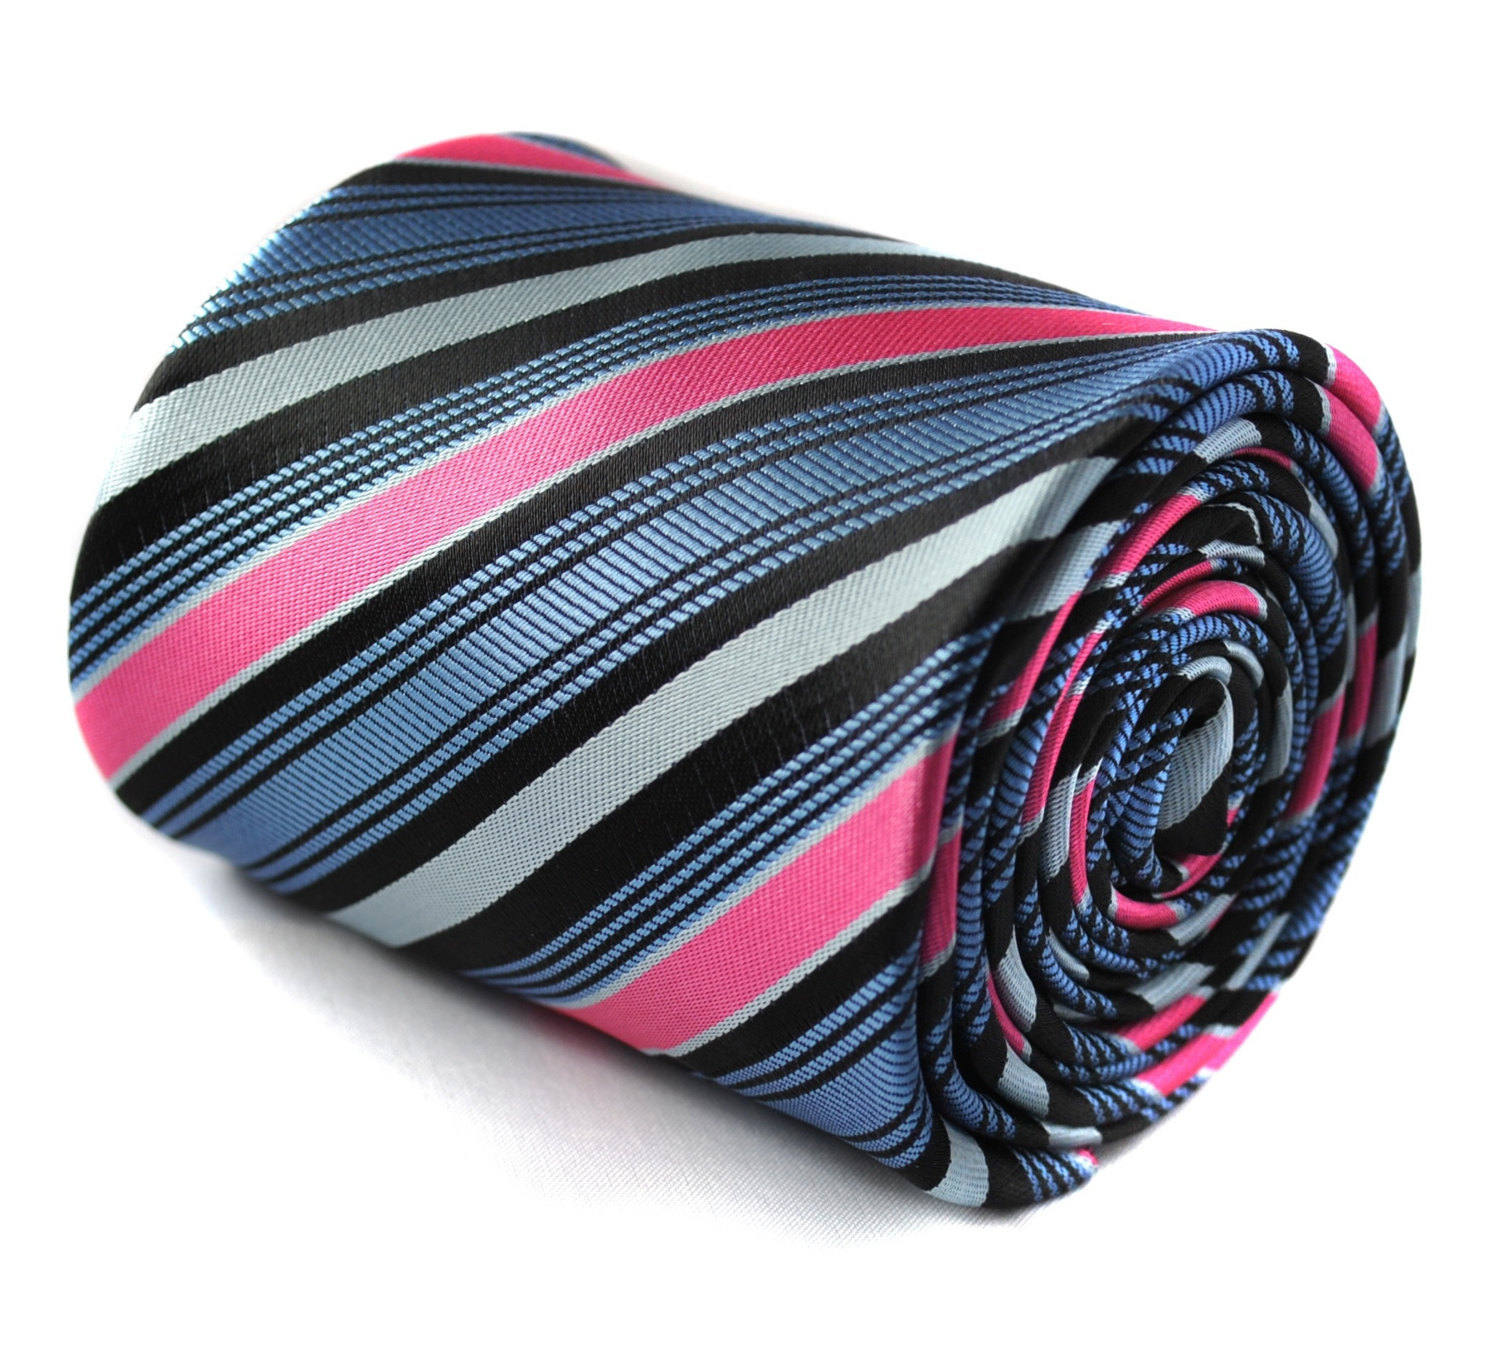 purple, pink, grey and light blue striped tie with signature floral design to th